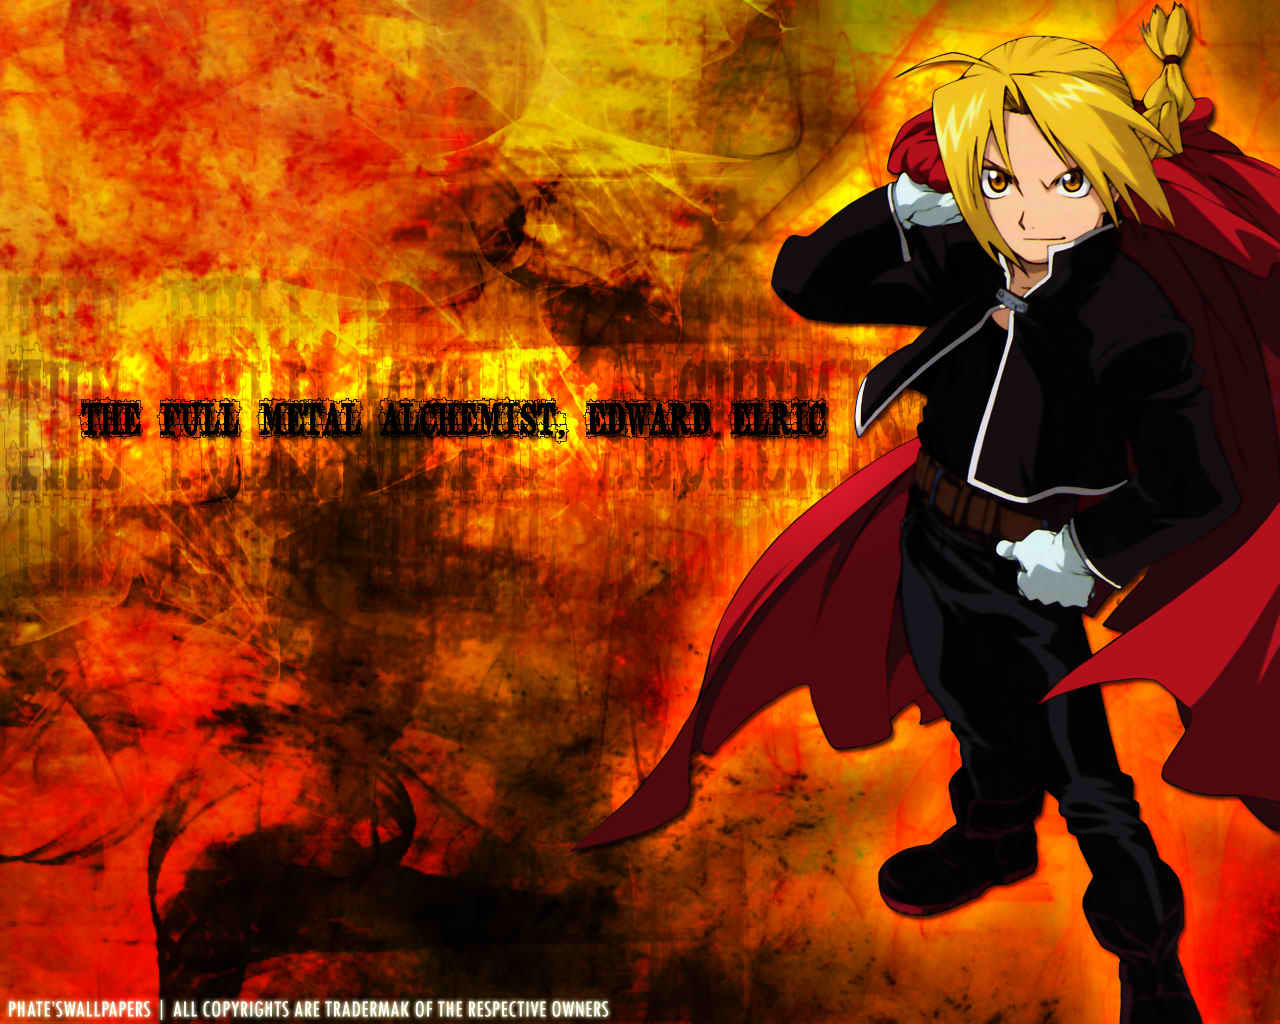 Full Metal Alchemist HD & Widescreen Wallpaper 0.075637753037306